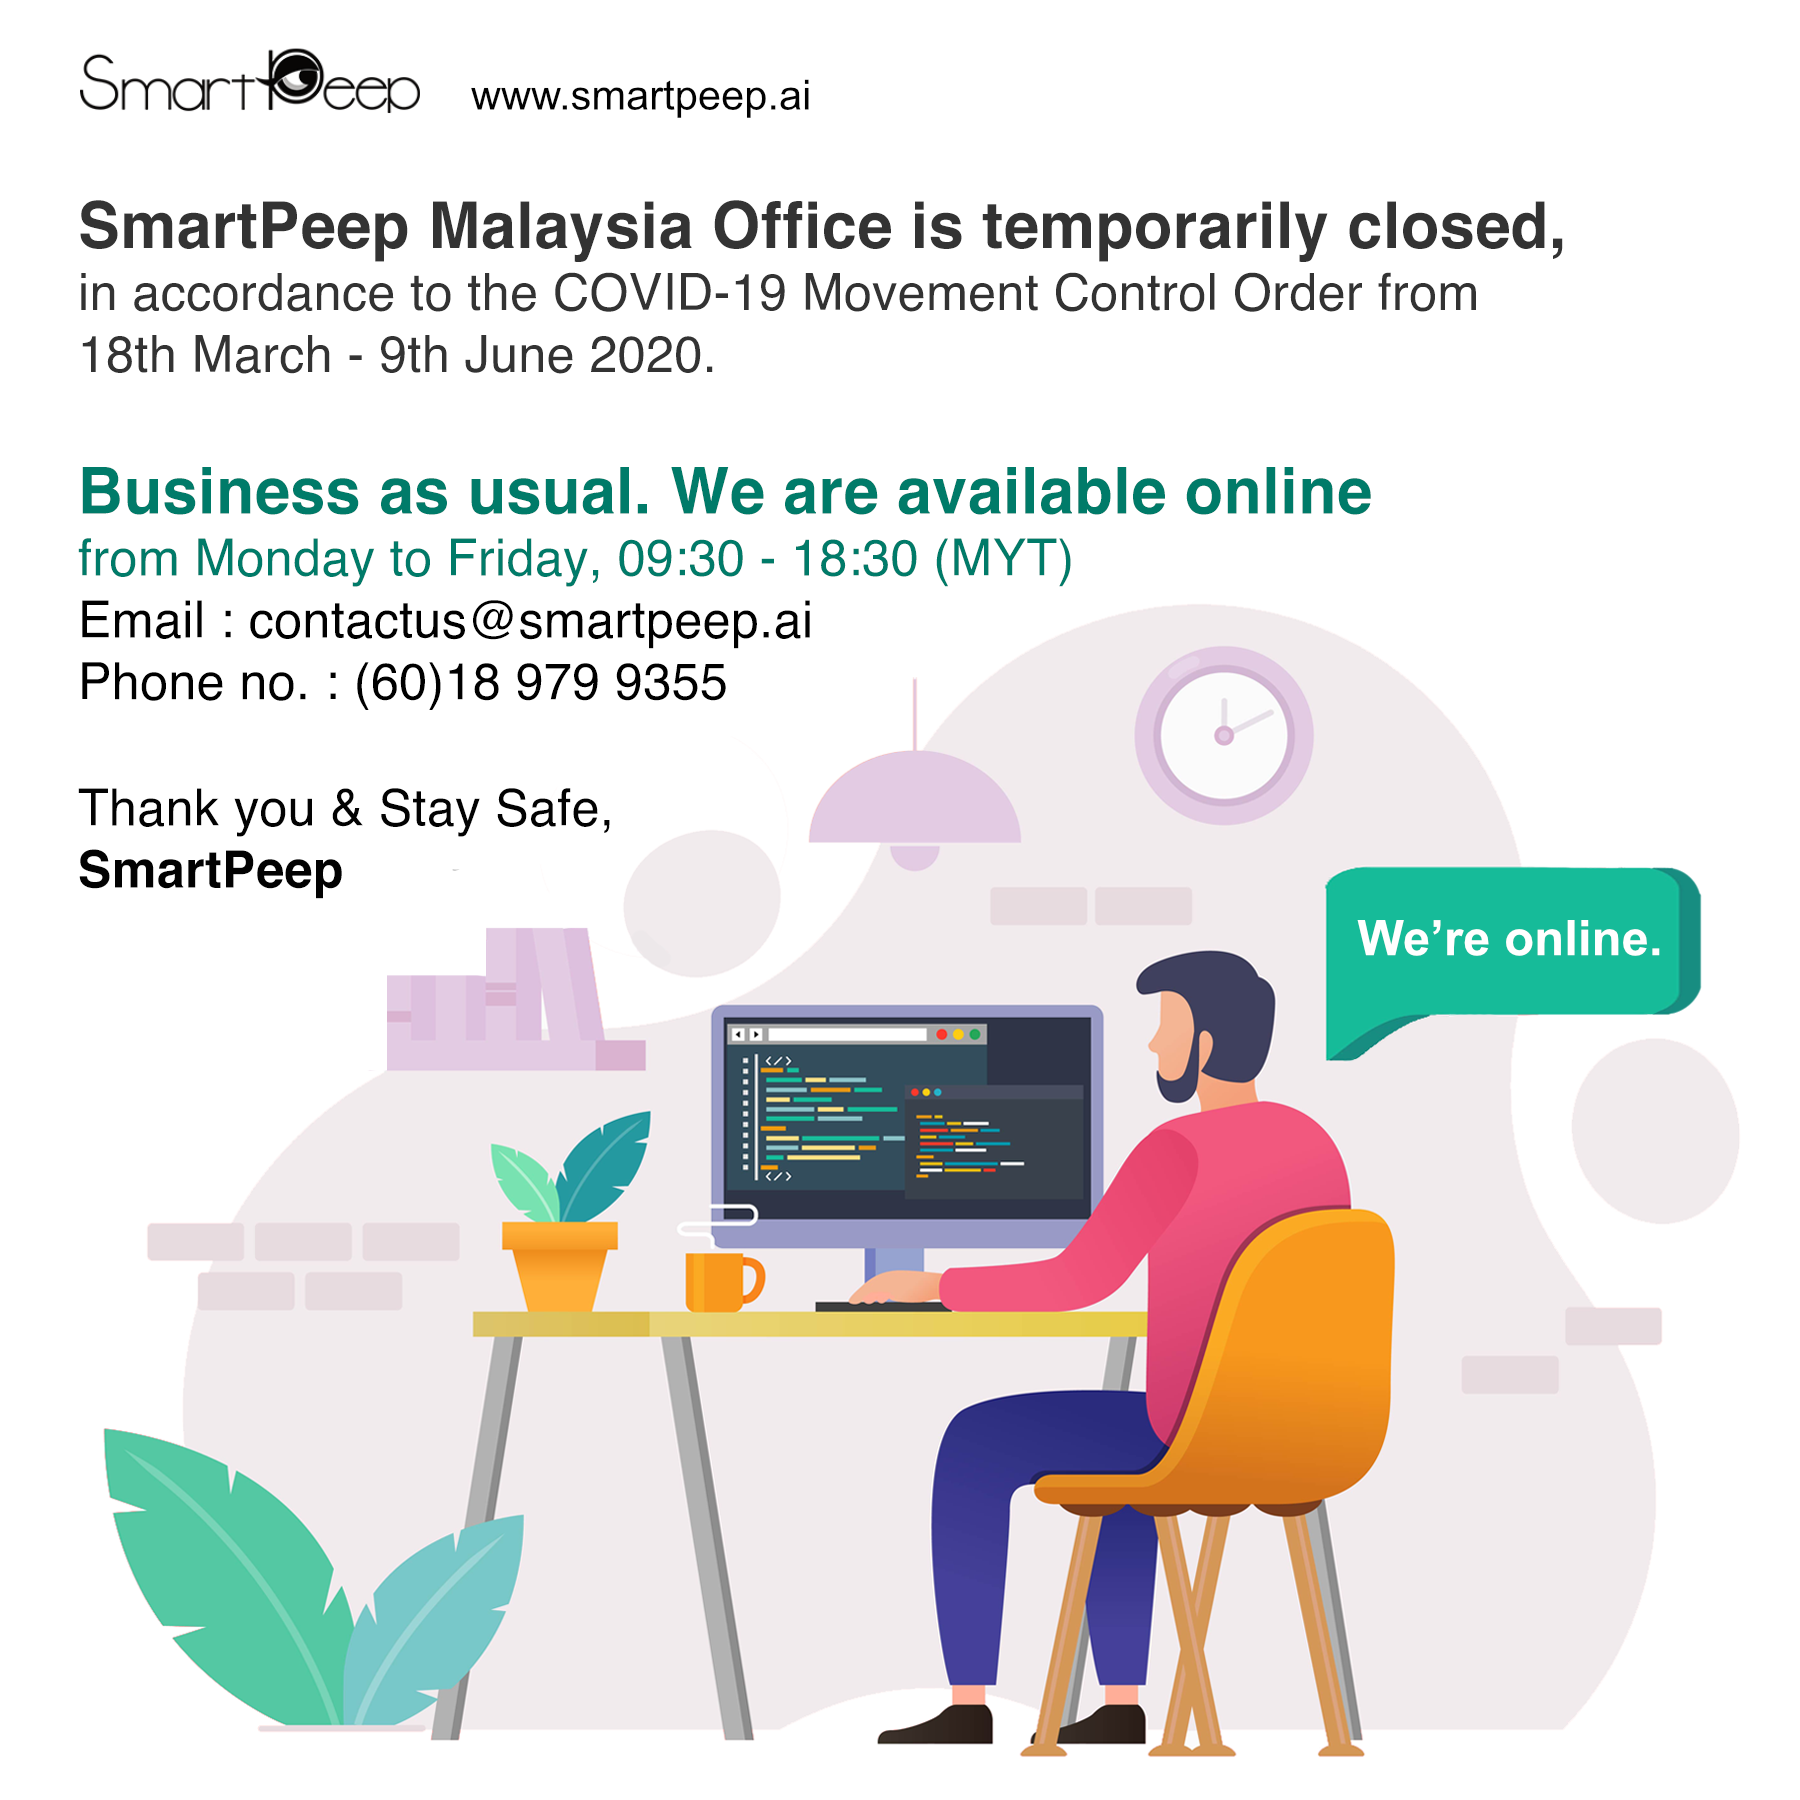 SmartPeep Johor Bahru, Malaysia office is closed in accordance with the Movement Control Order due to the COVID-19 pandemic